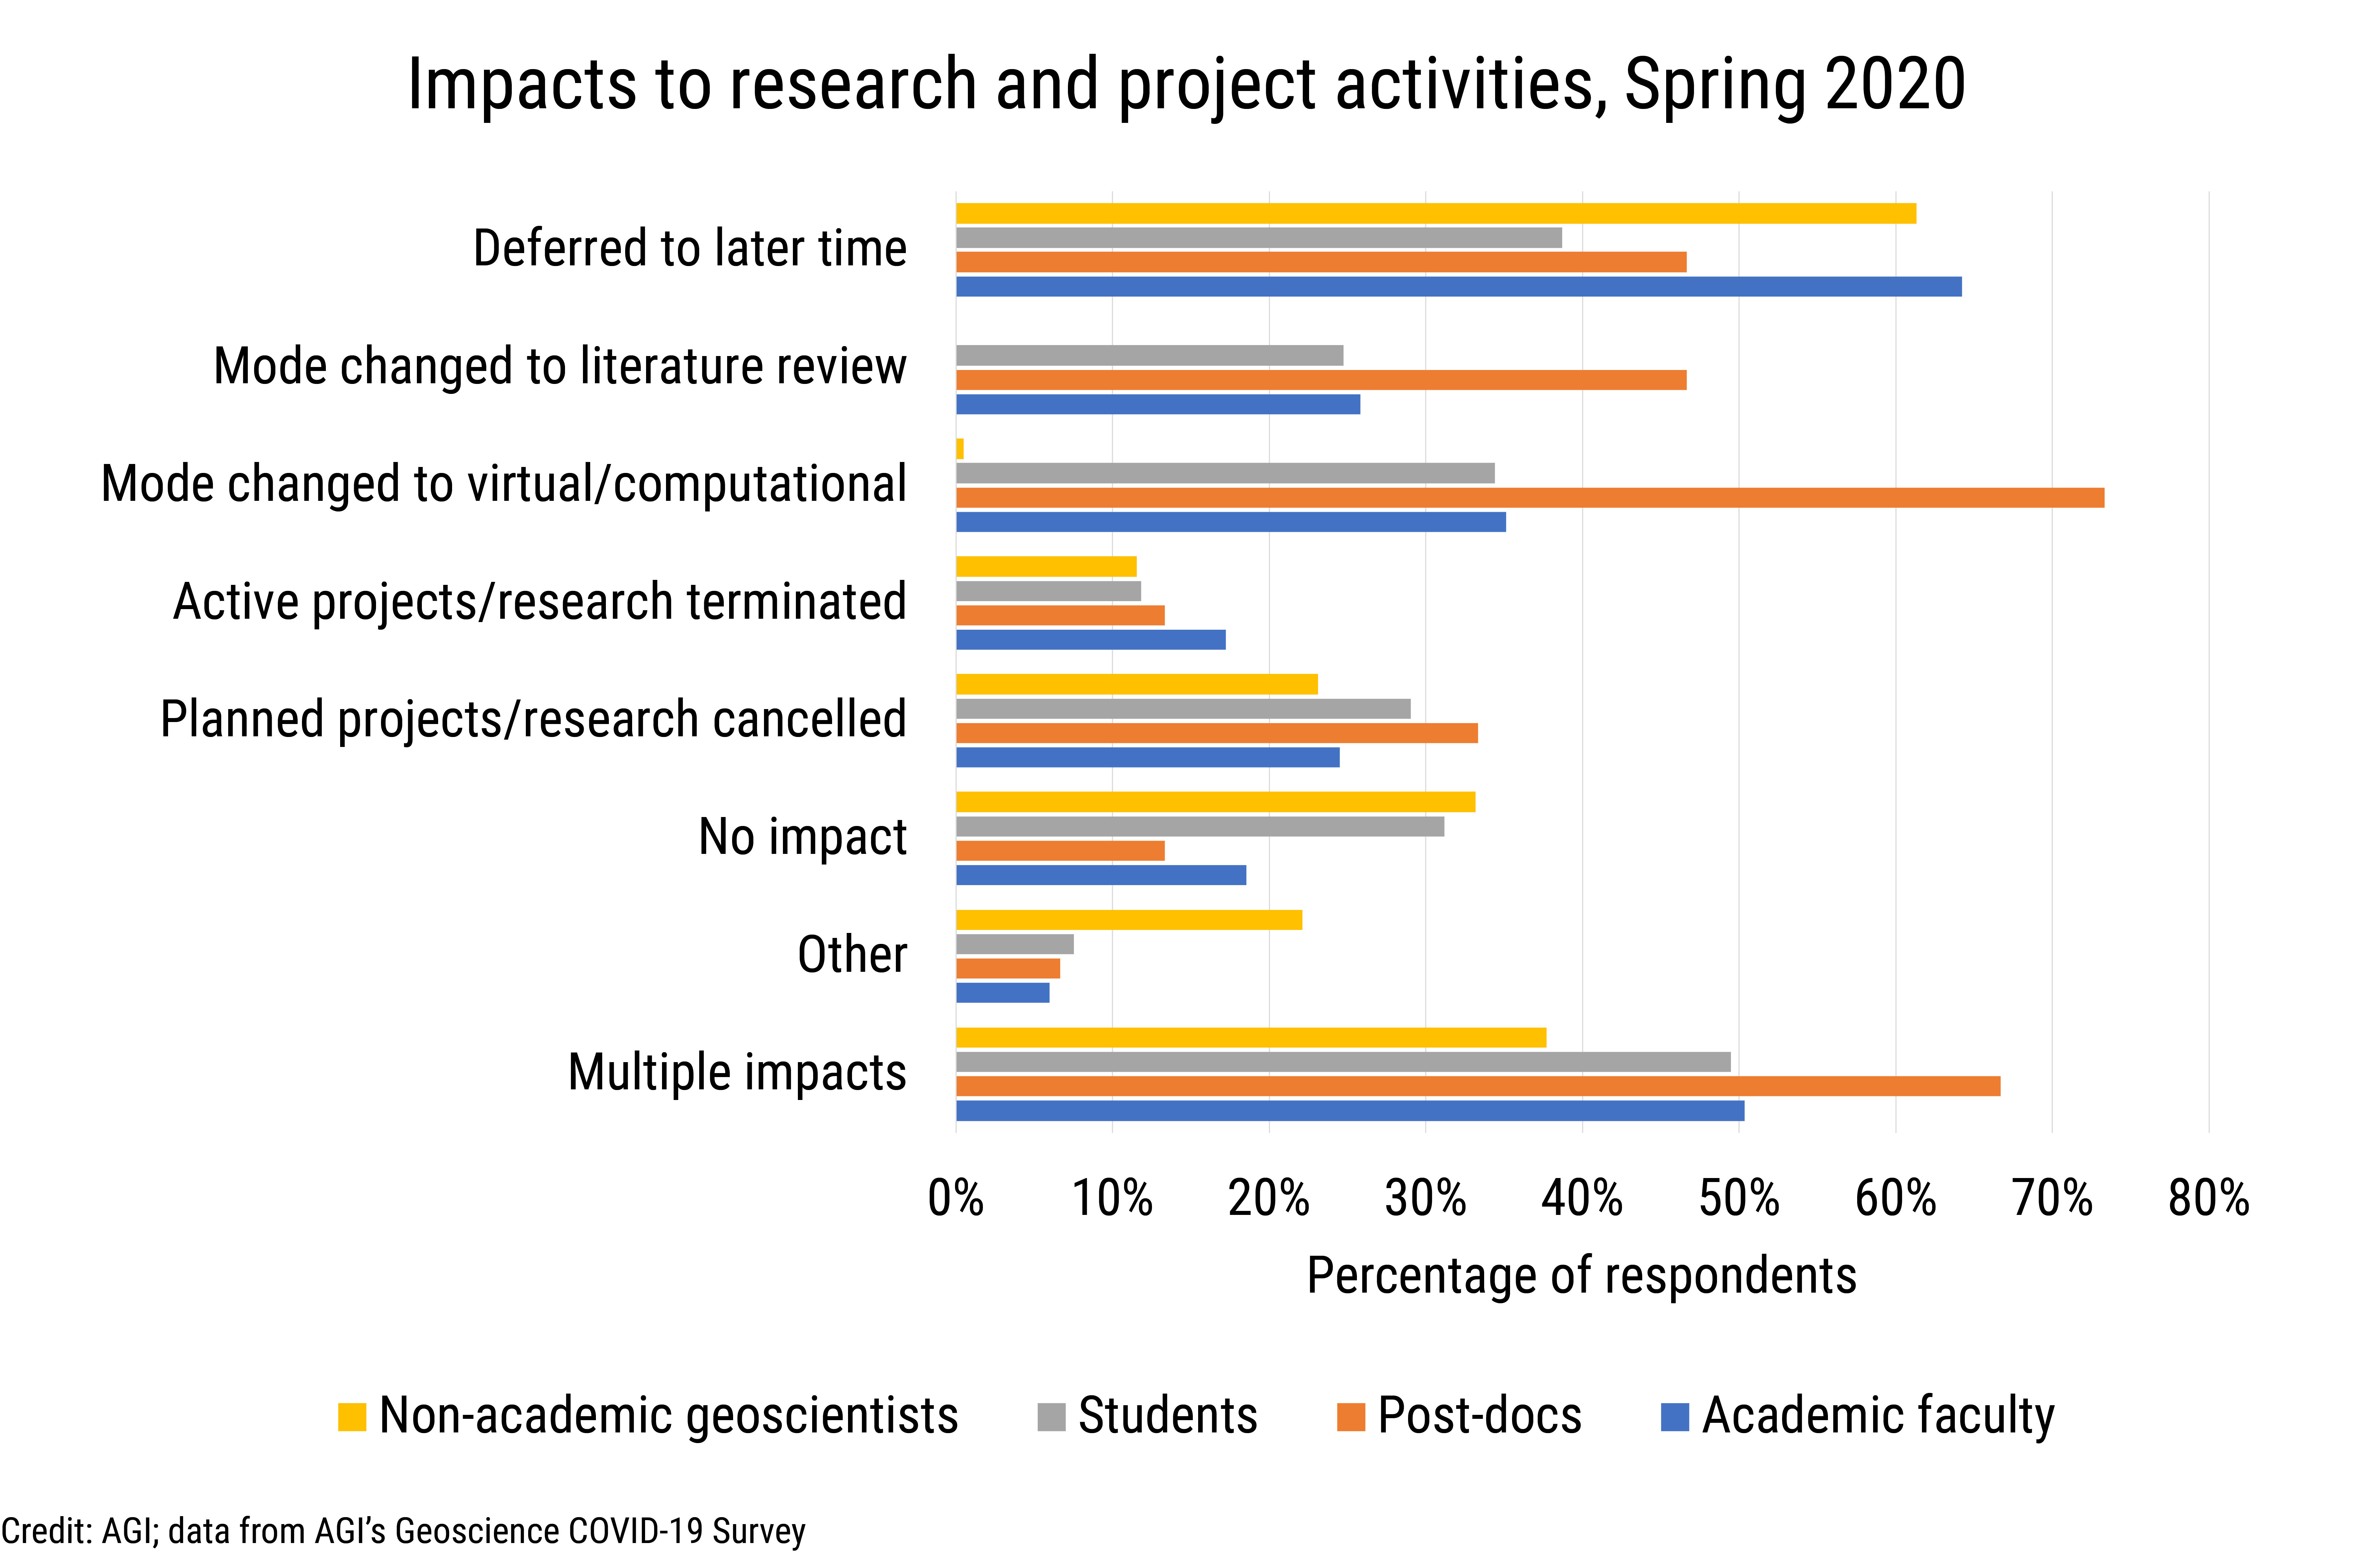 Data Brief 2020-009 chart 01: Impacts to research and project activities, Spring 2020 (credit: AGI; data derived from AGI's Geoscience COVID-19 Survey)